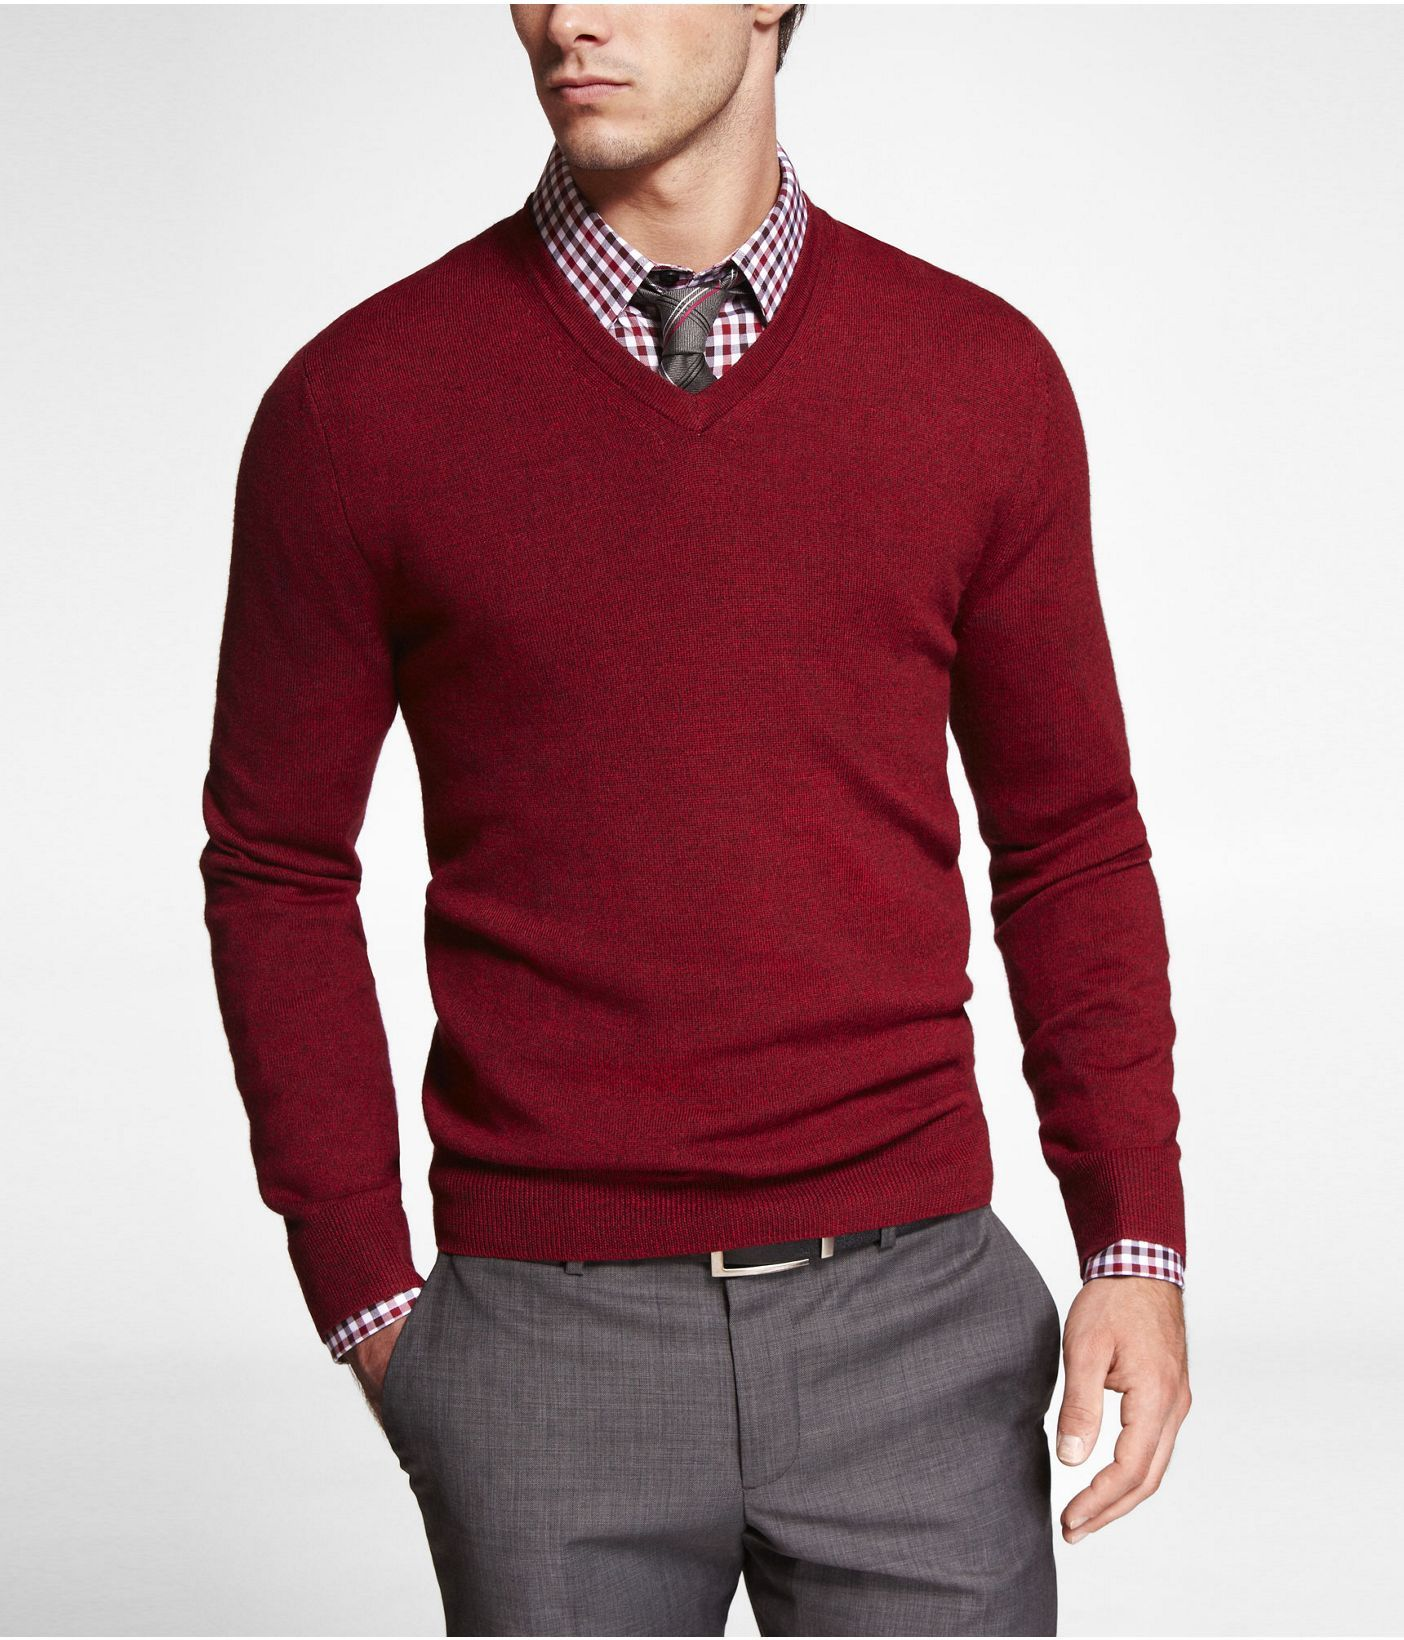 MERINO WOOL V-NECK SWEATER | Express | Style | Pinterest | Merino ...